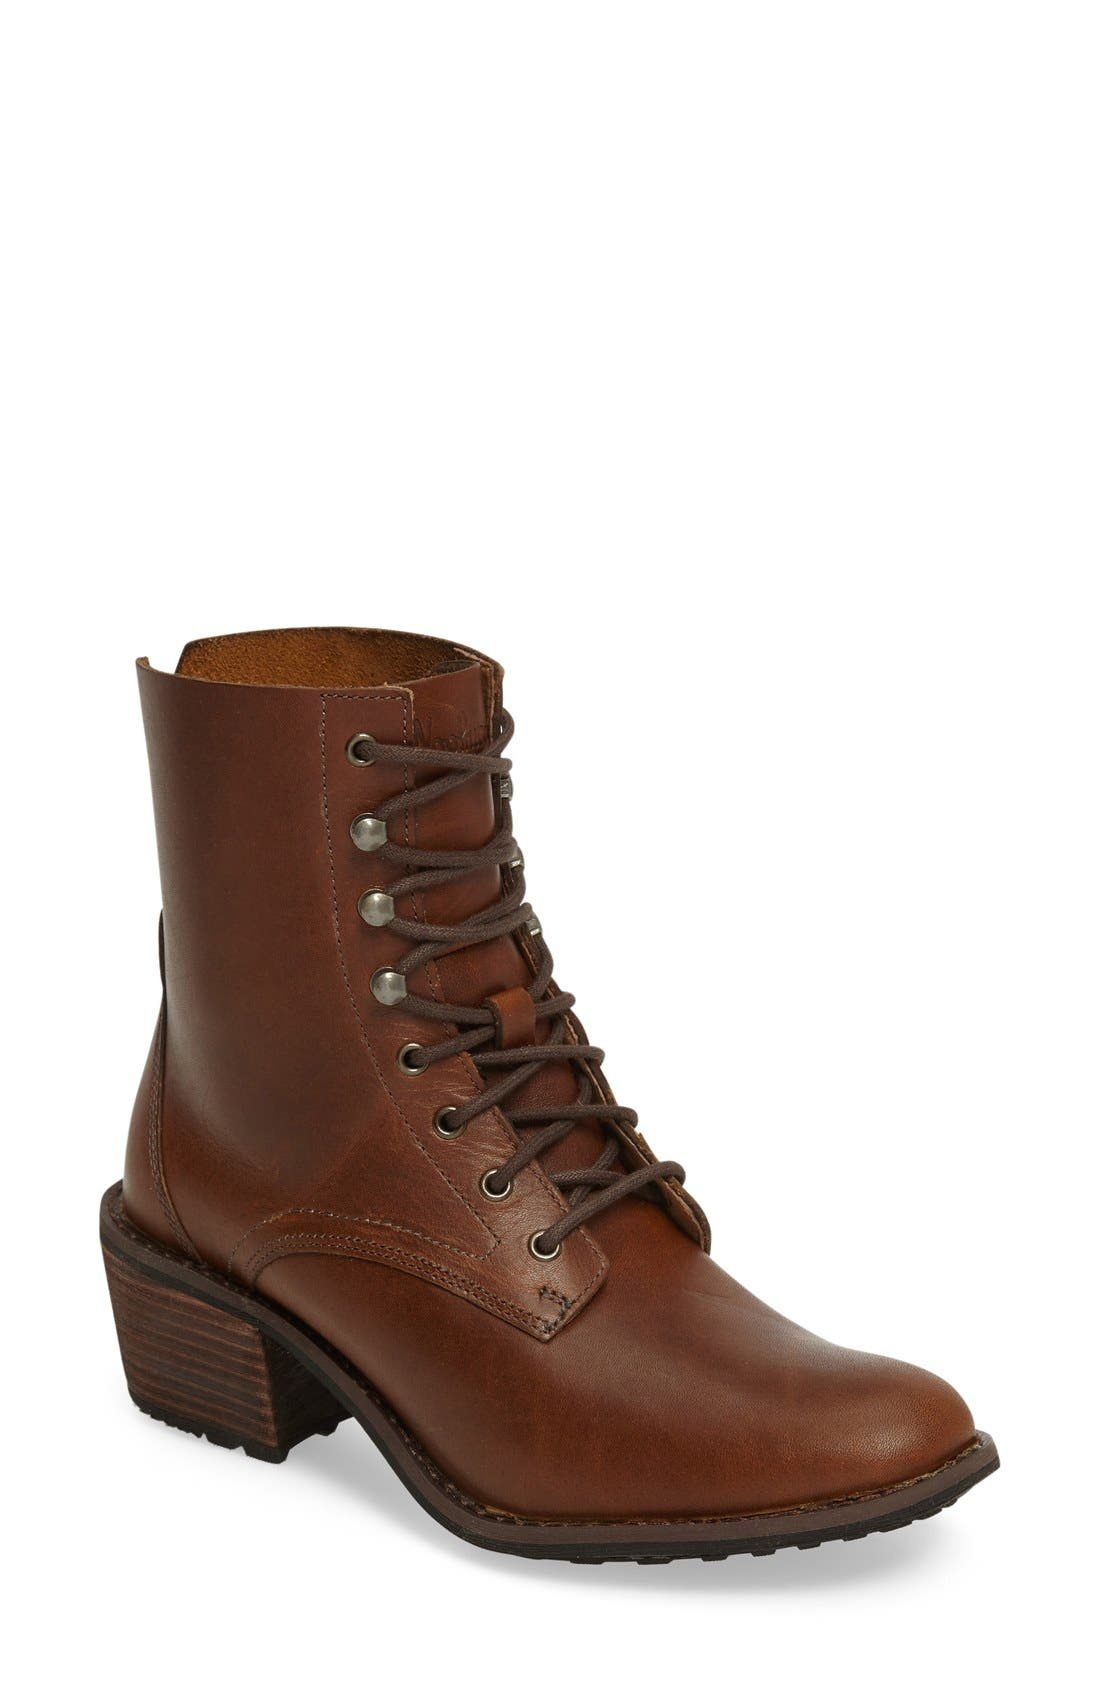 Western Territory Water Resistant Bootie,                         Main,                         color, Ginger Leather